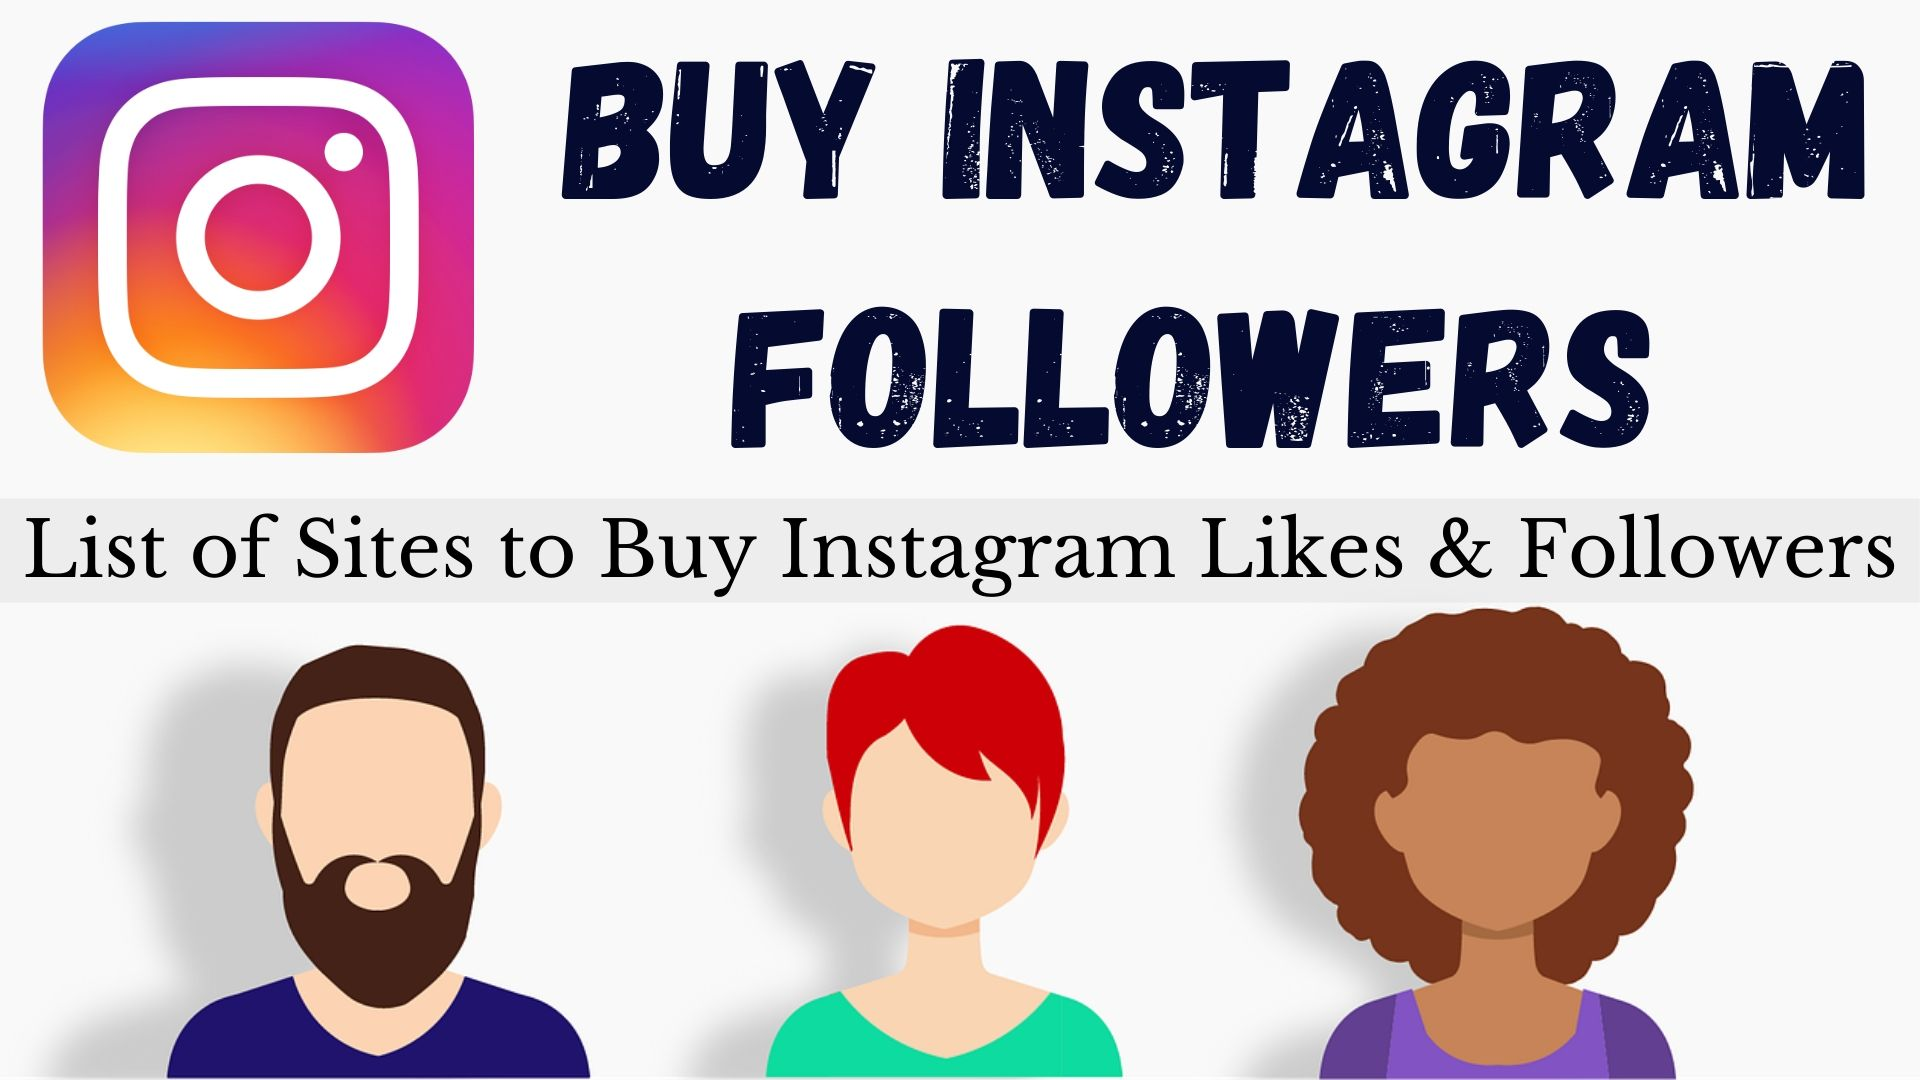 sites to buy instagram followers